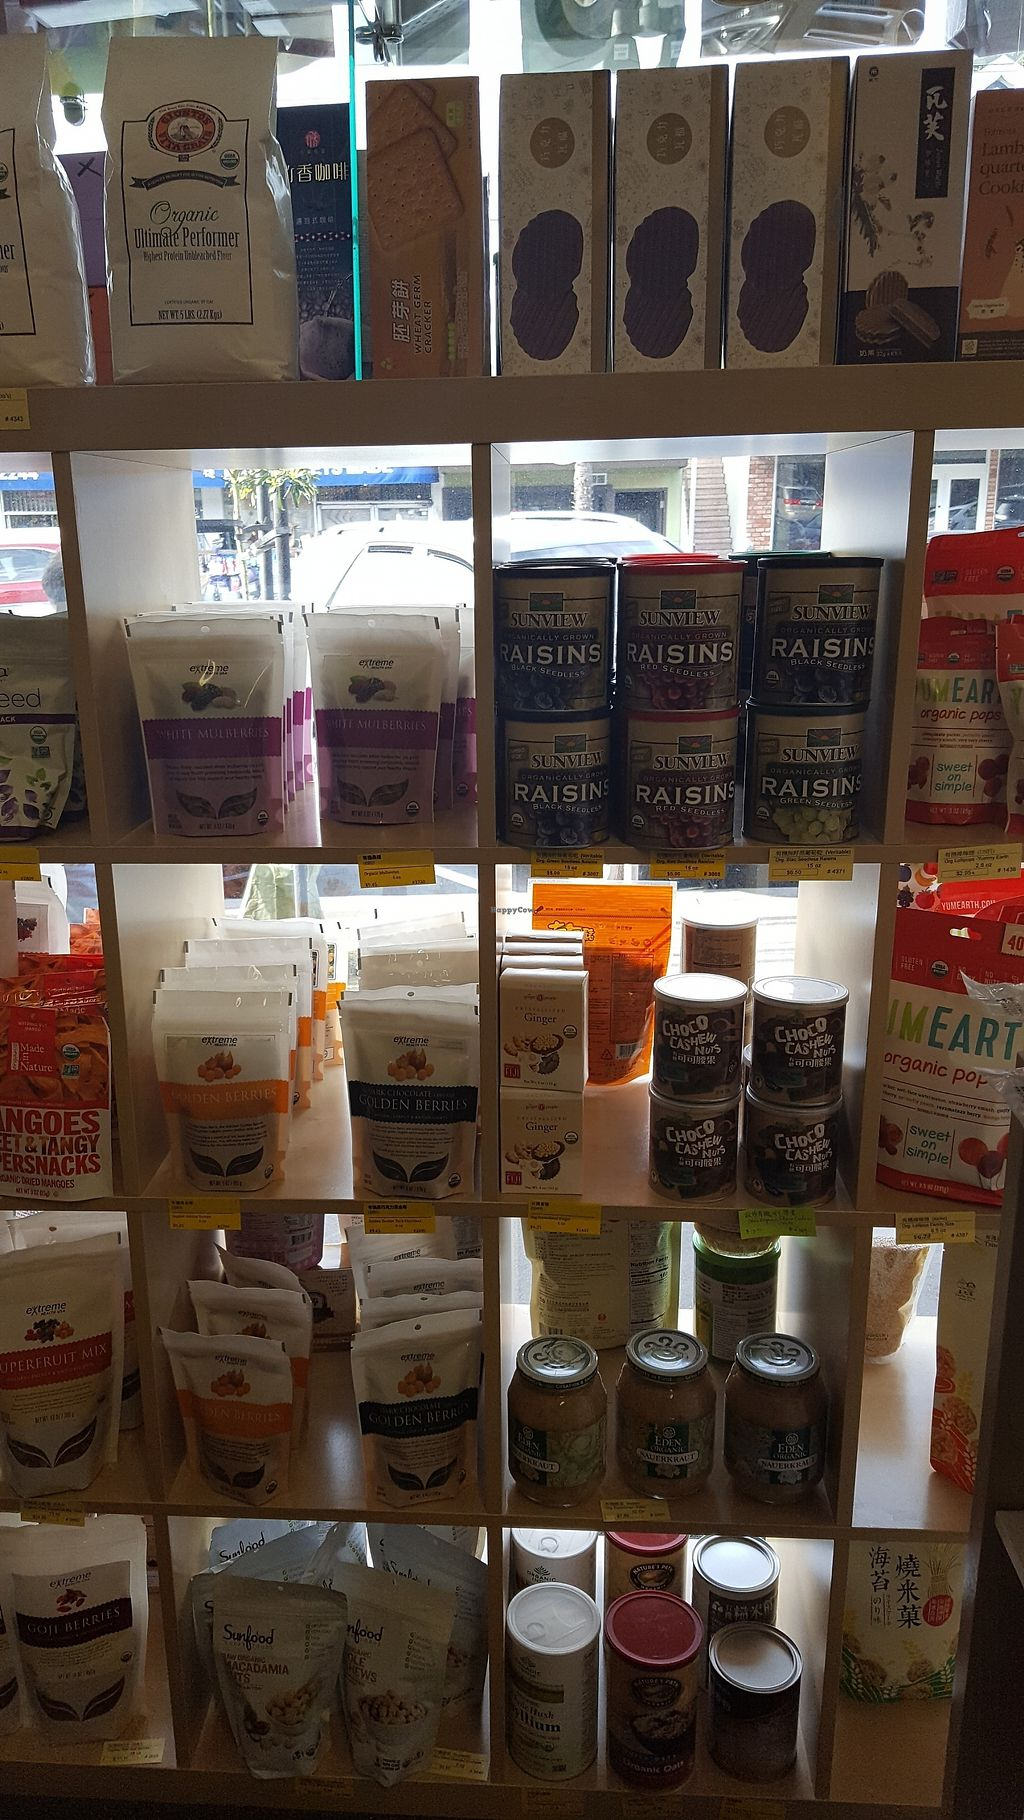 """Photo of Heartland Healthy Food  by <a href=""""/members/profile/VeganScientist"""">VeganScientist</a> <br/>Snacks and candy <br/> April 11, 2018  - <a href='/contact/abuse/image/117308/384172'>Report</a>"""